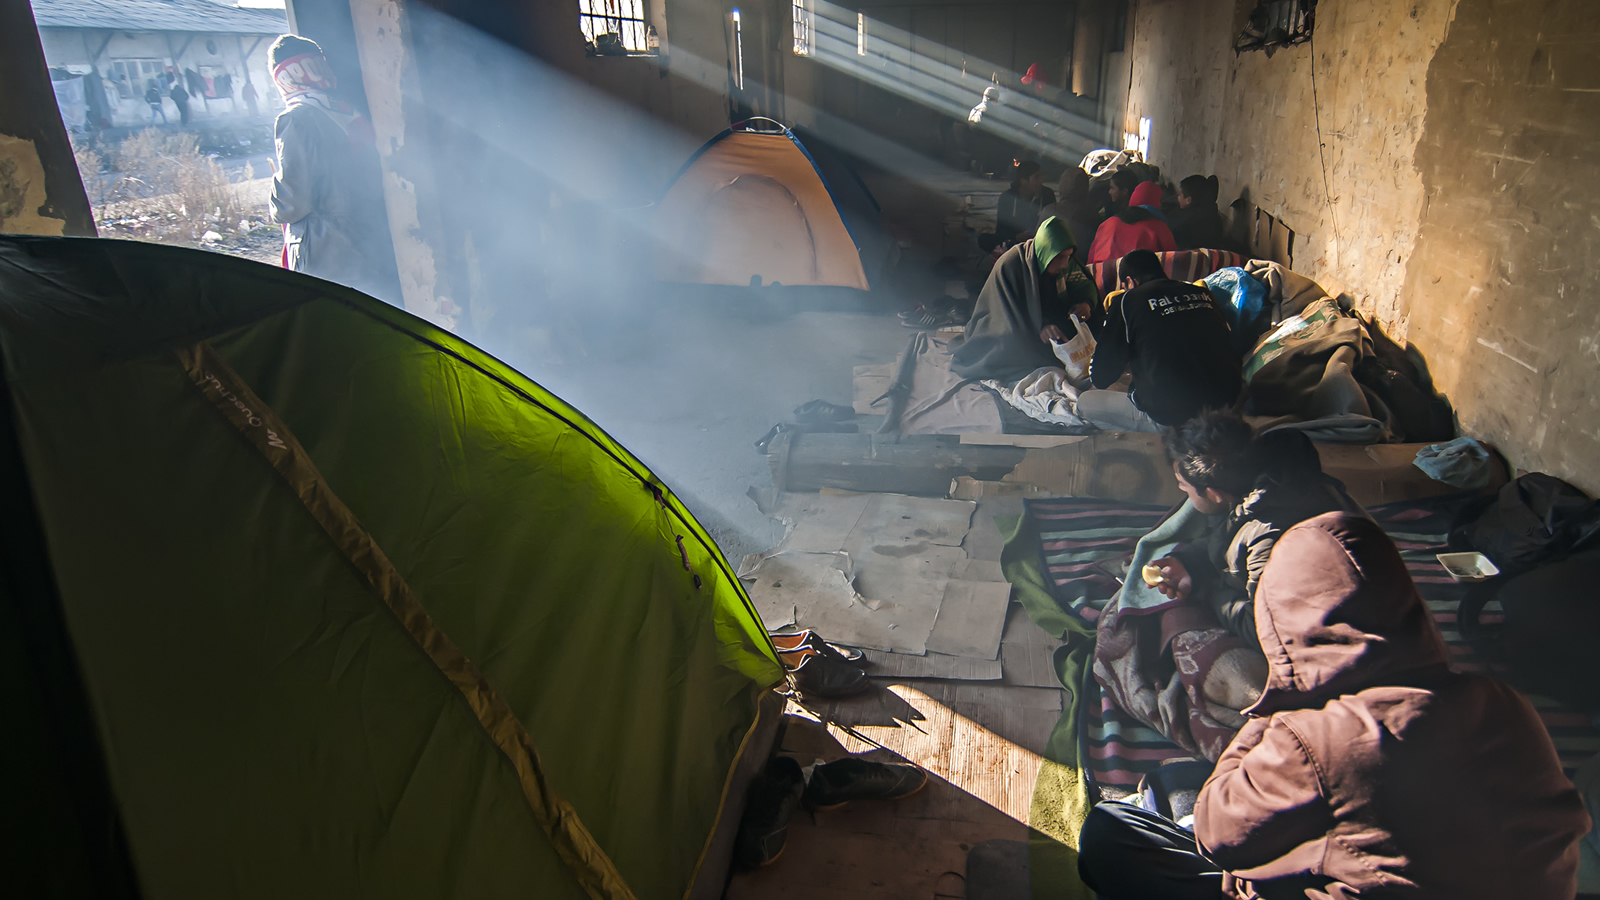 Refugees eating in tents and abandoned building in winter.